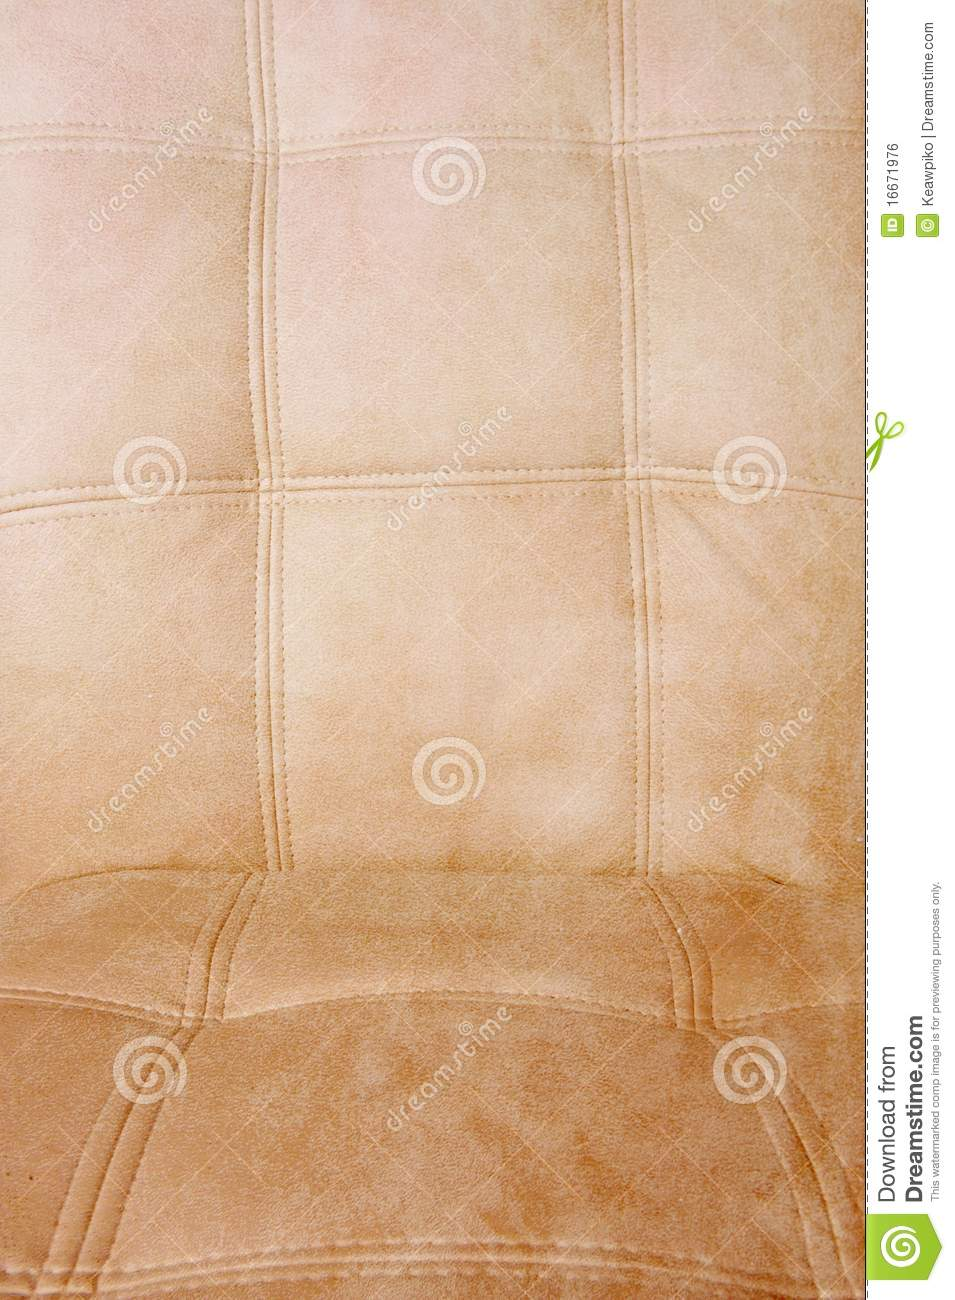 how to clean a dirty white leather sofa